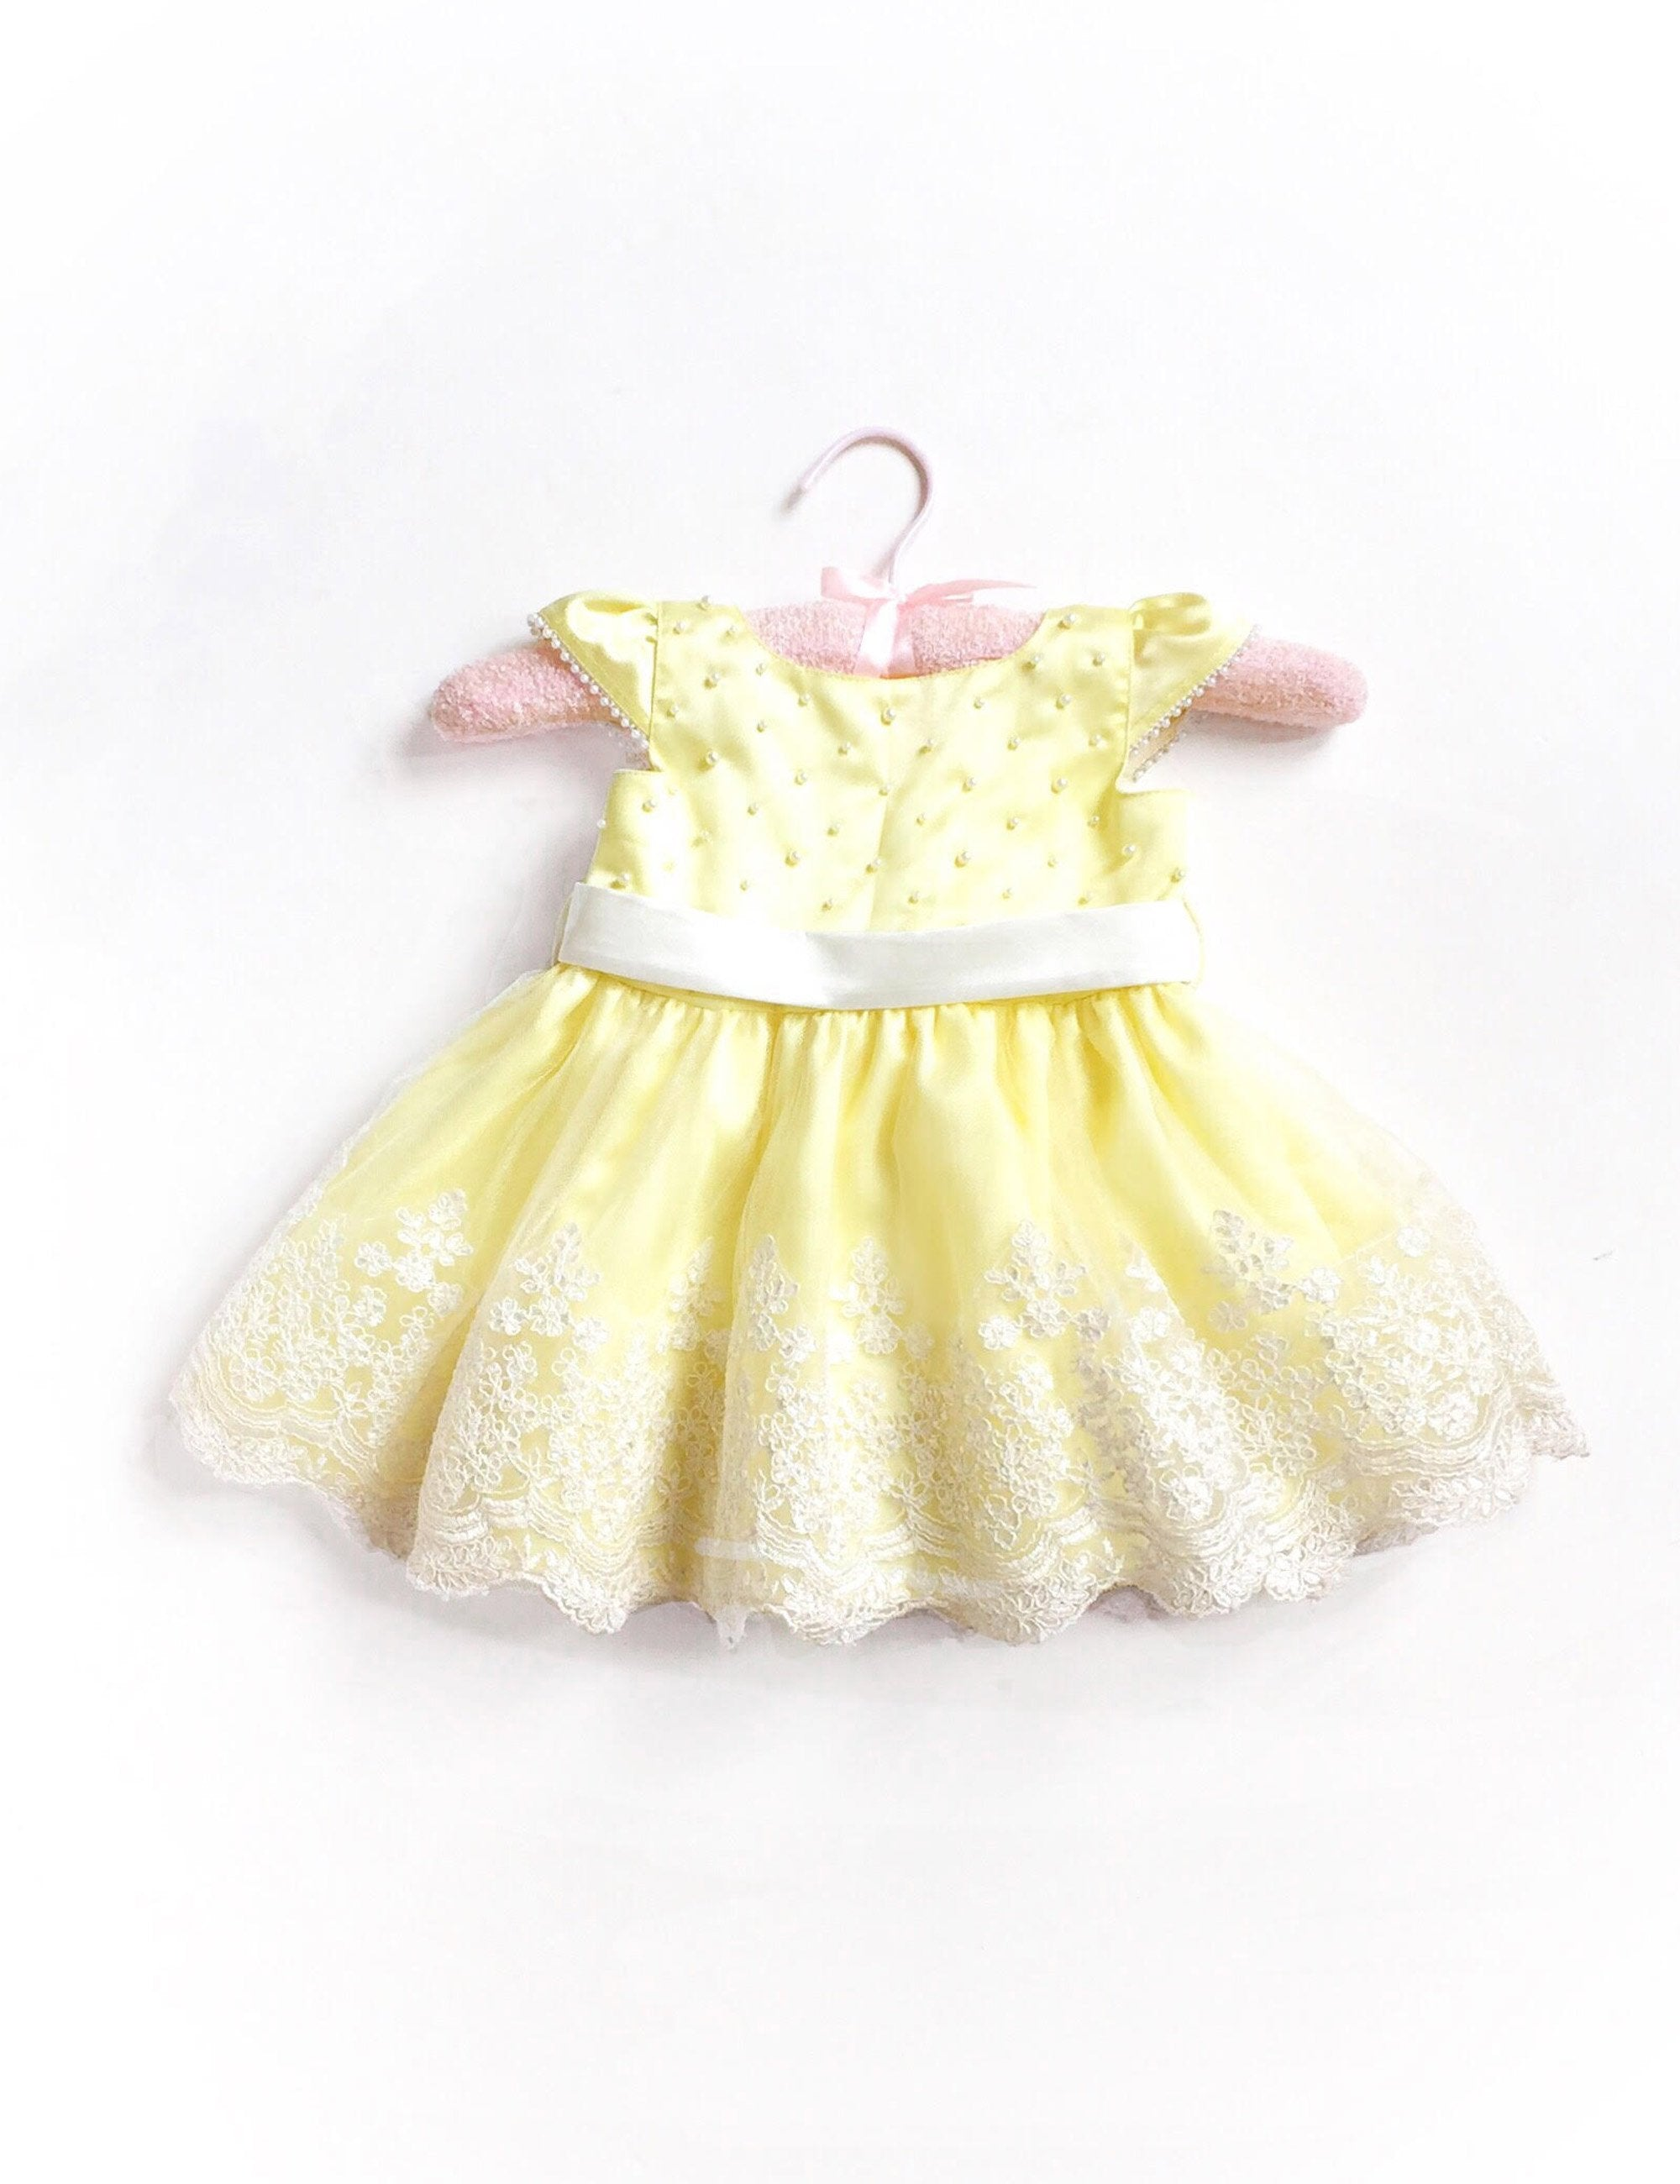 Paris Belle Dress in Yellow Colour for Girls